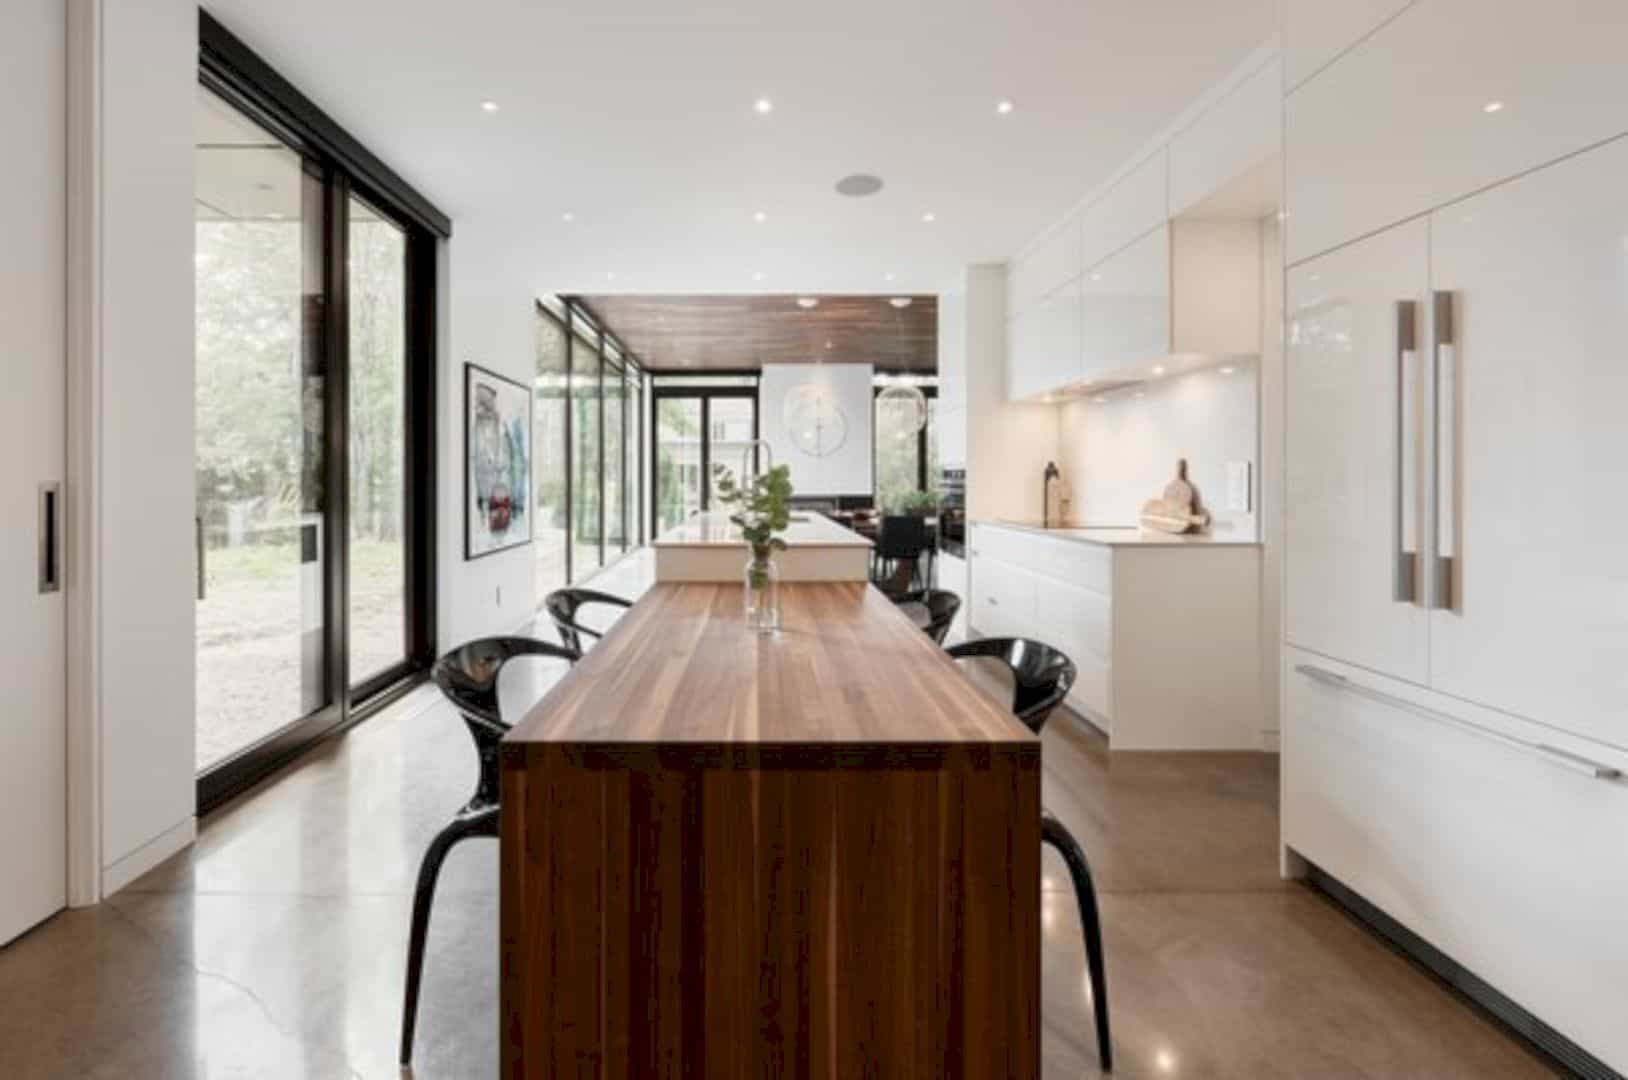 Oak Residence A Modern And Minimalist Home With Natural Materials 4